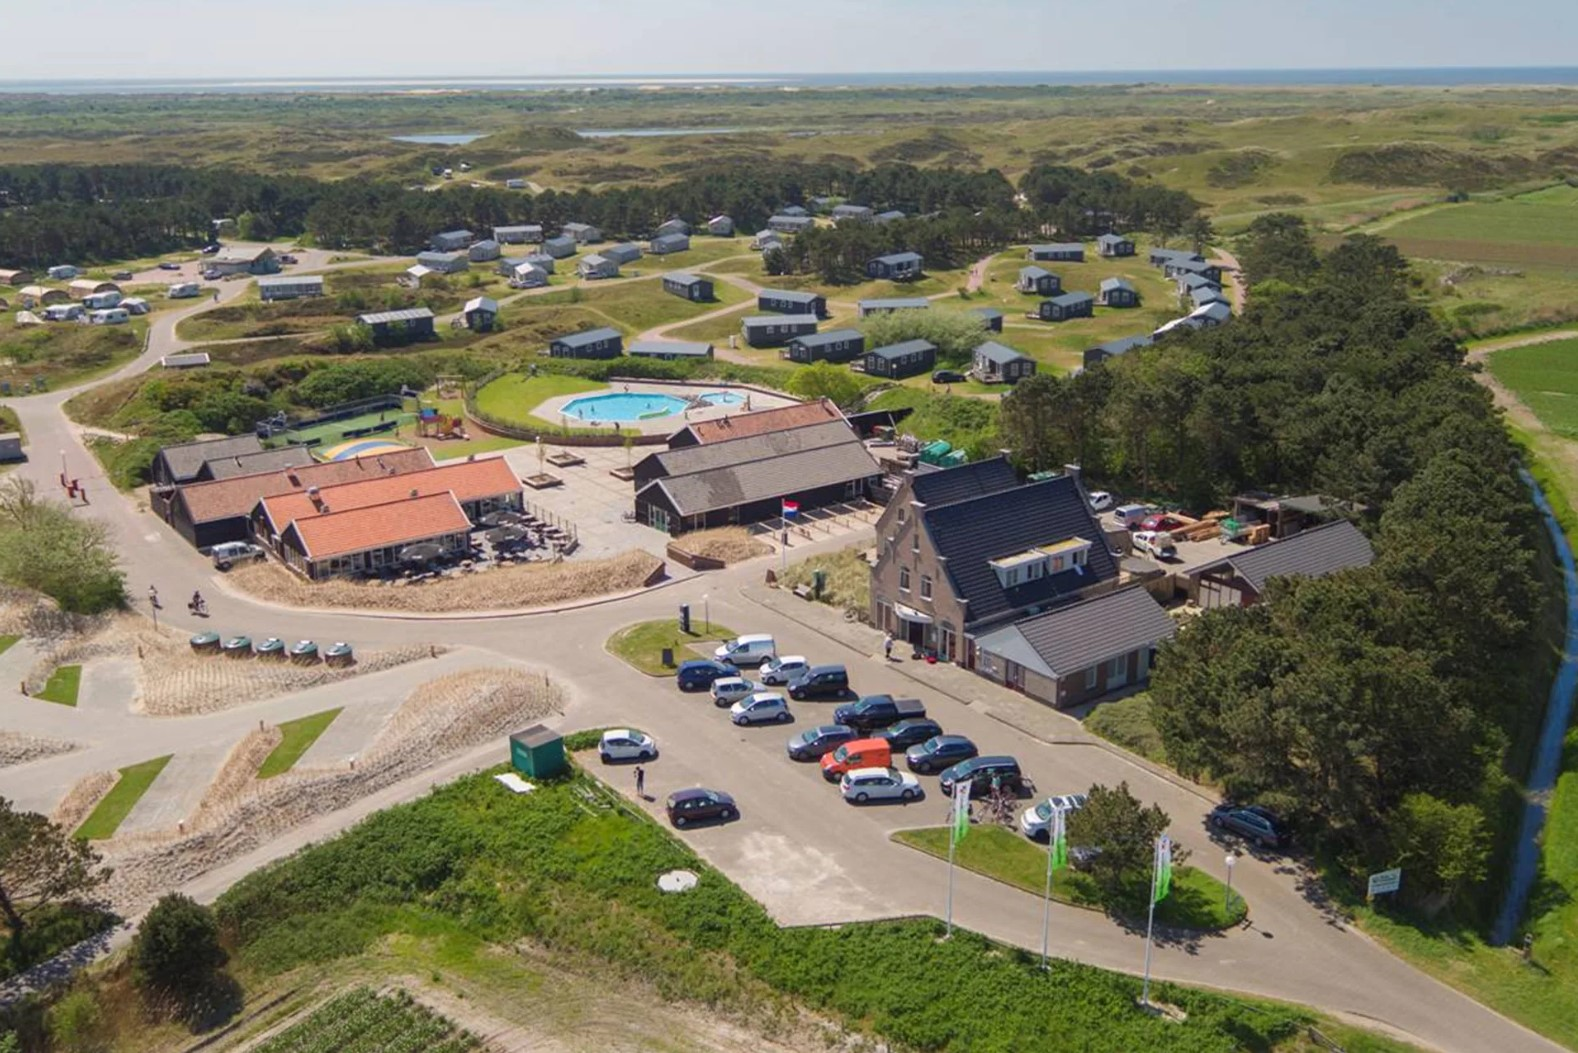 Camping Loodsmansduin luchtfoto